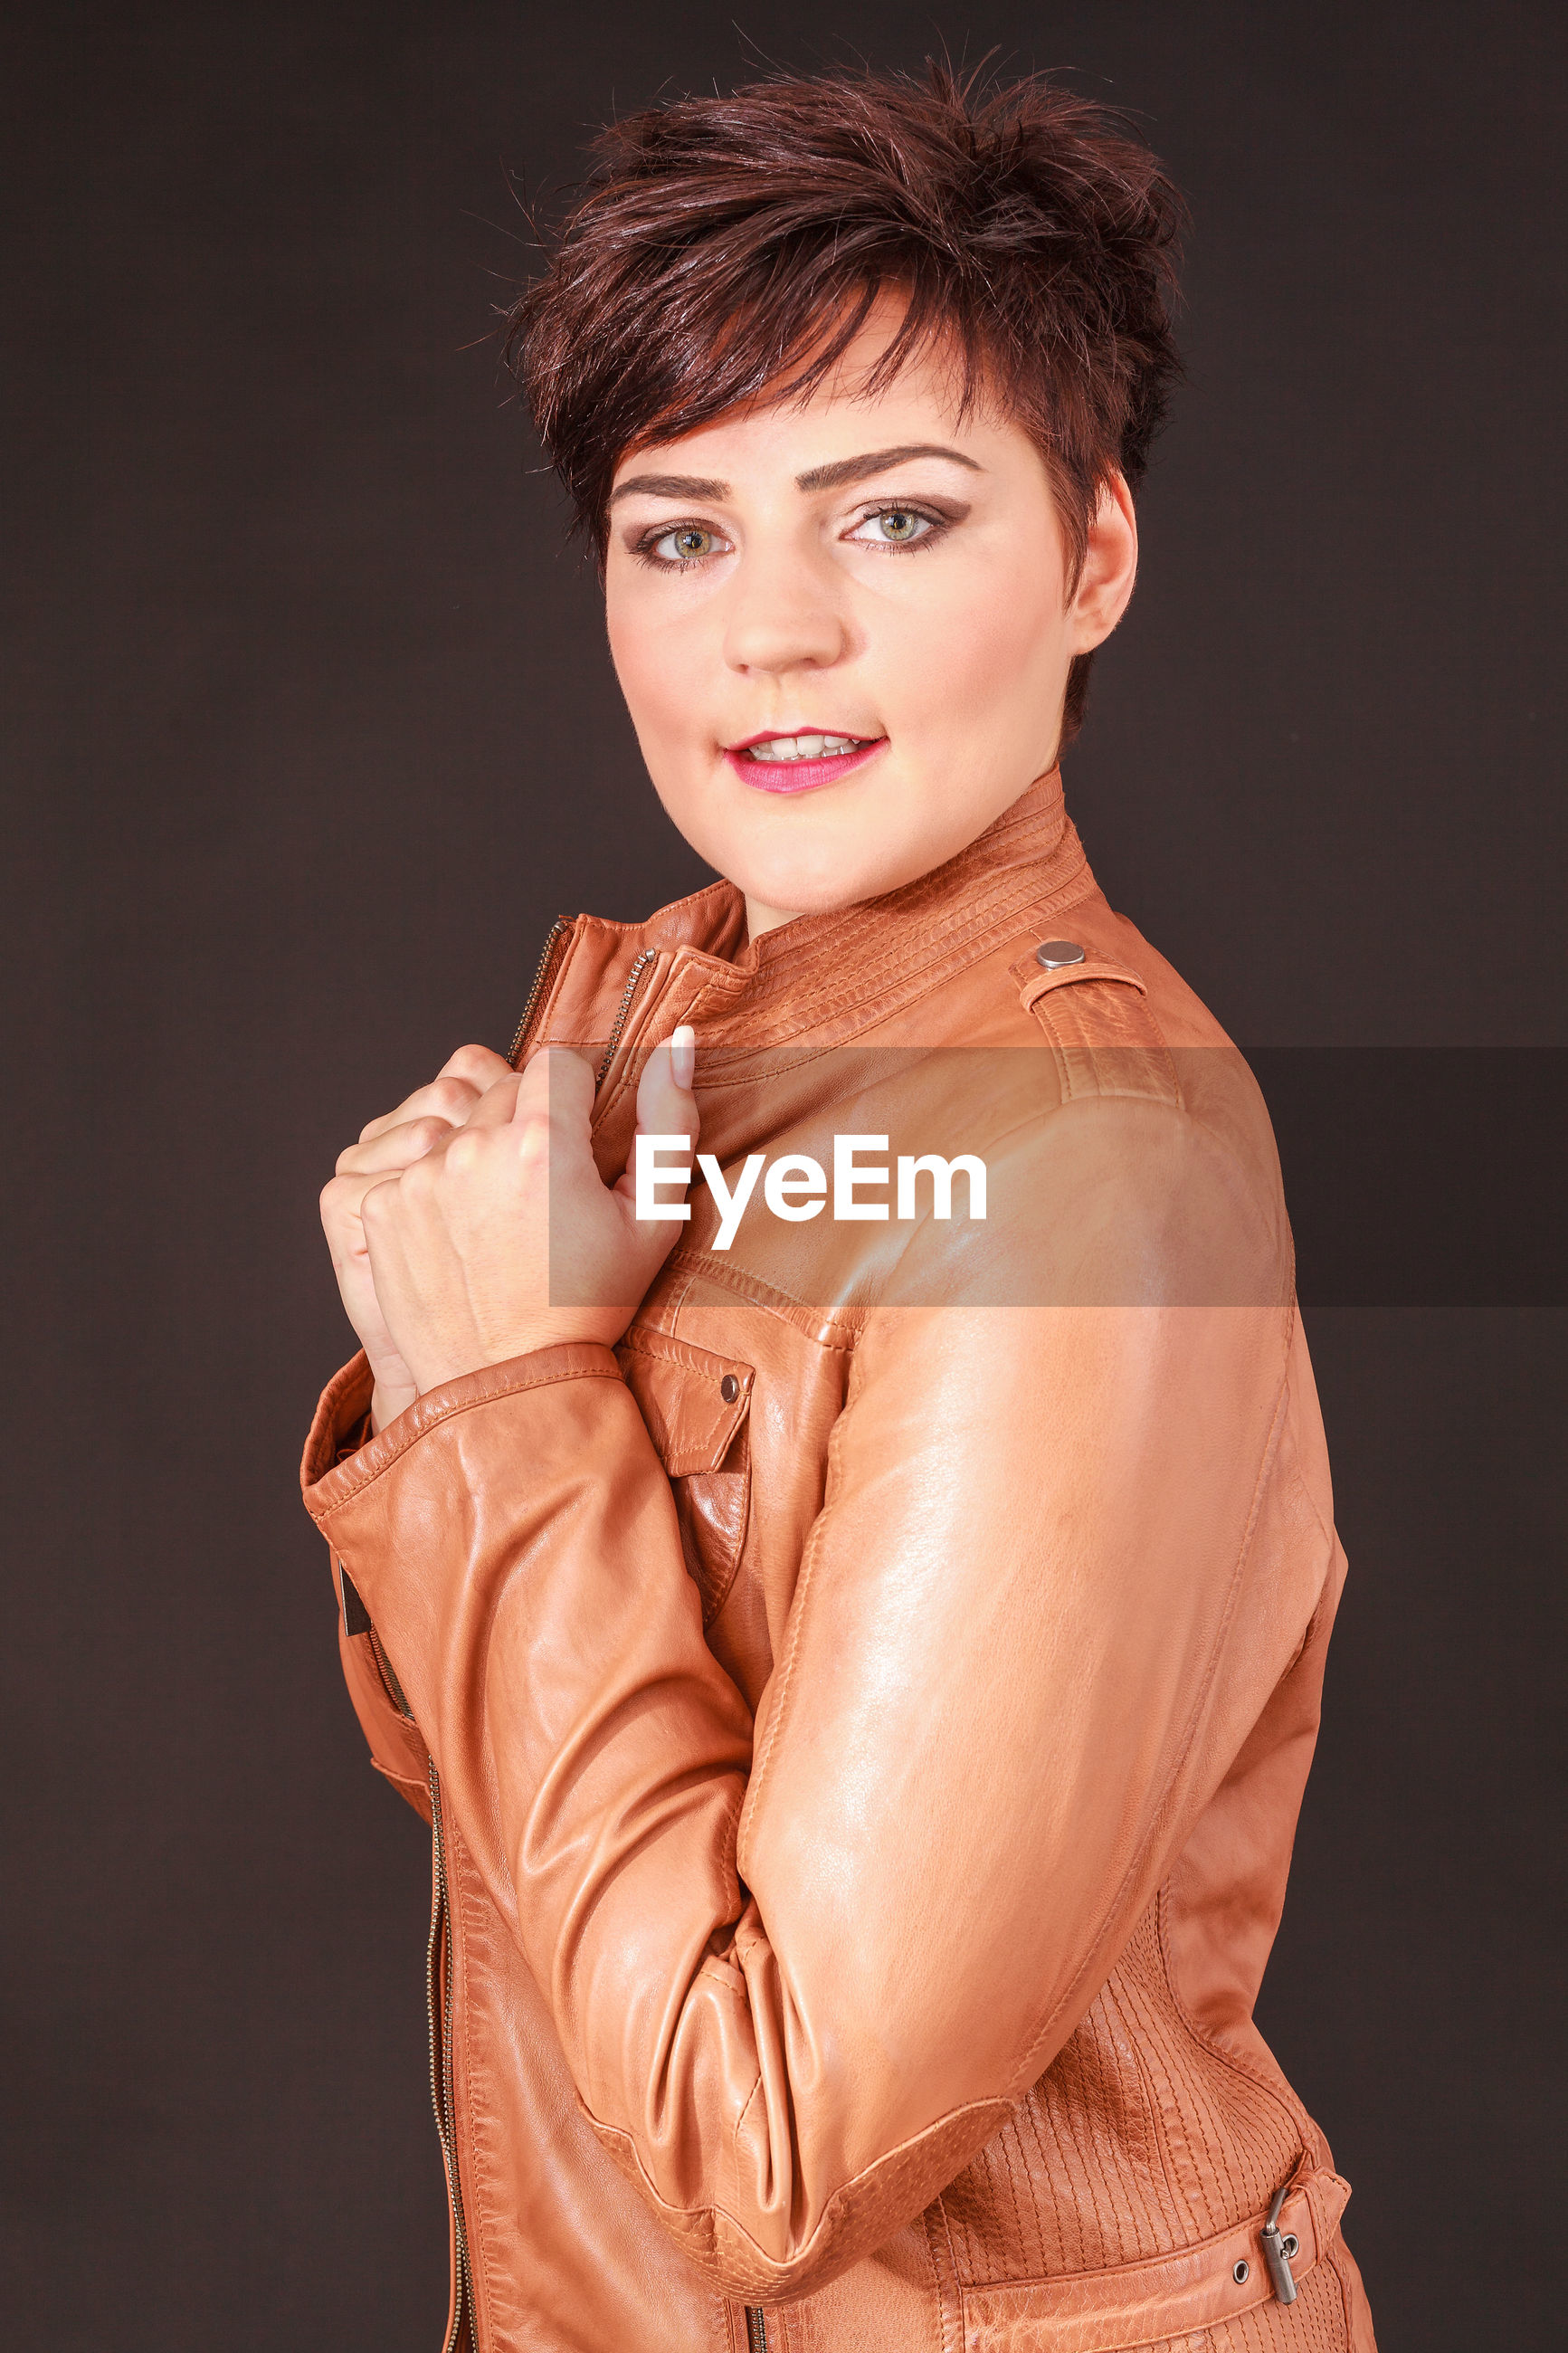 Portrait of female model wearing brown leather jacket against gray background